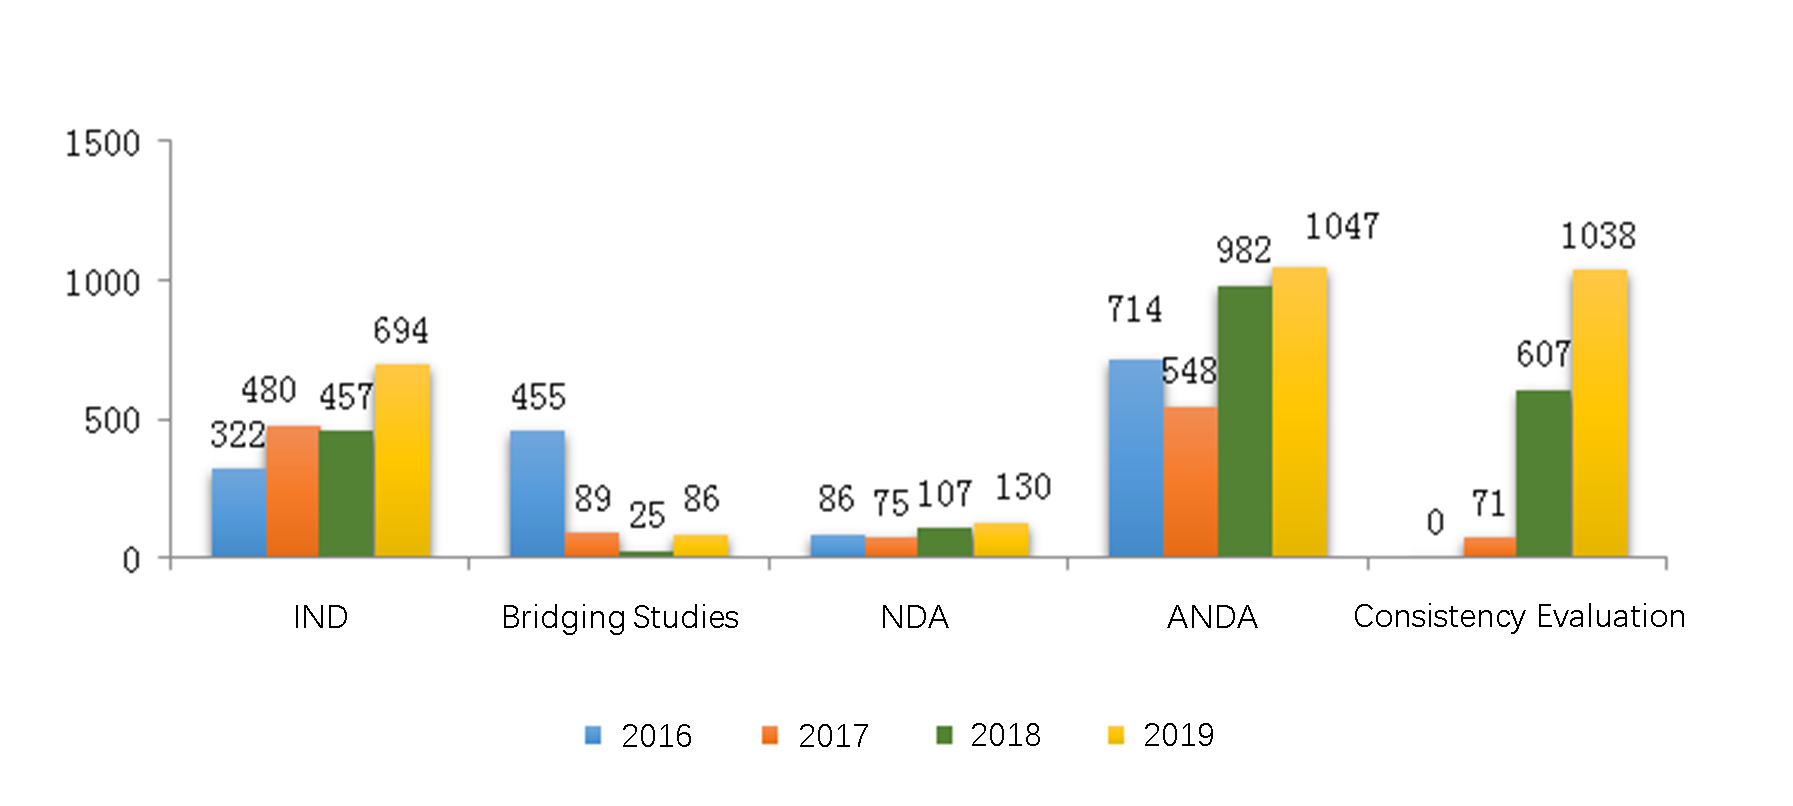 Fig. 4 Number of Chemical Drug Registrations Approved from 2016 to 2019 for New Drugs and Generics